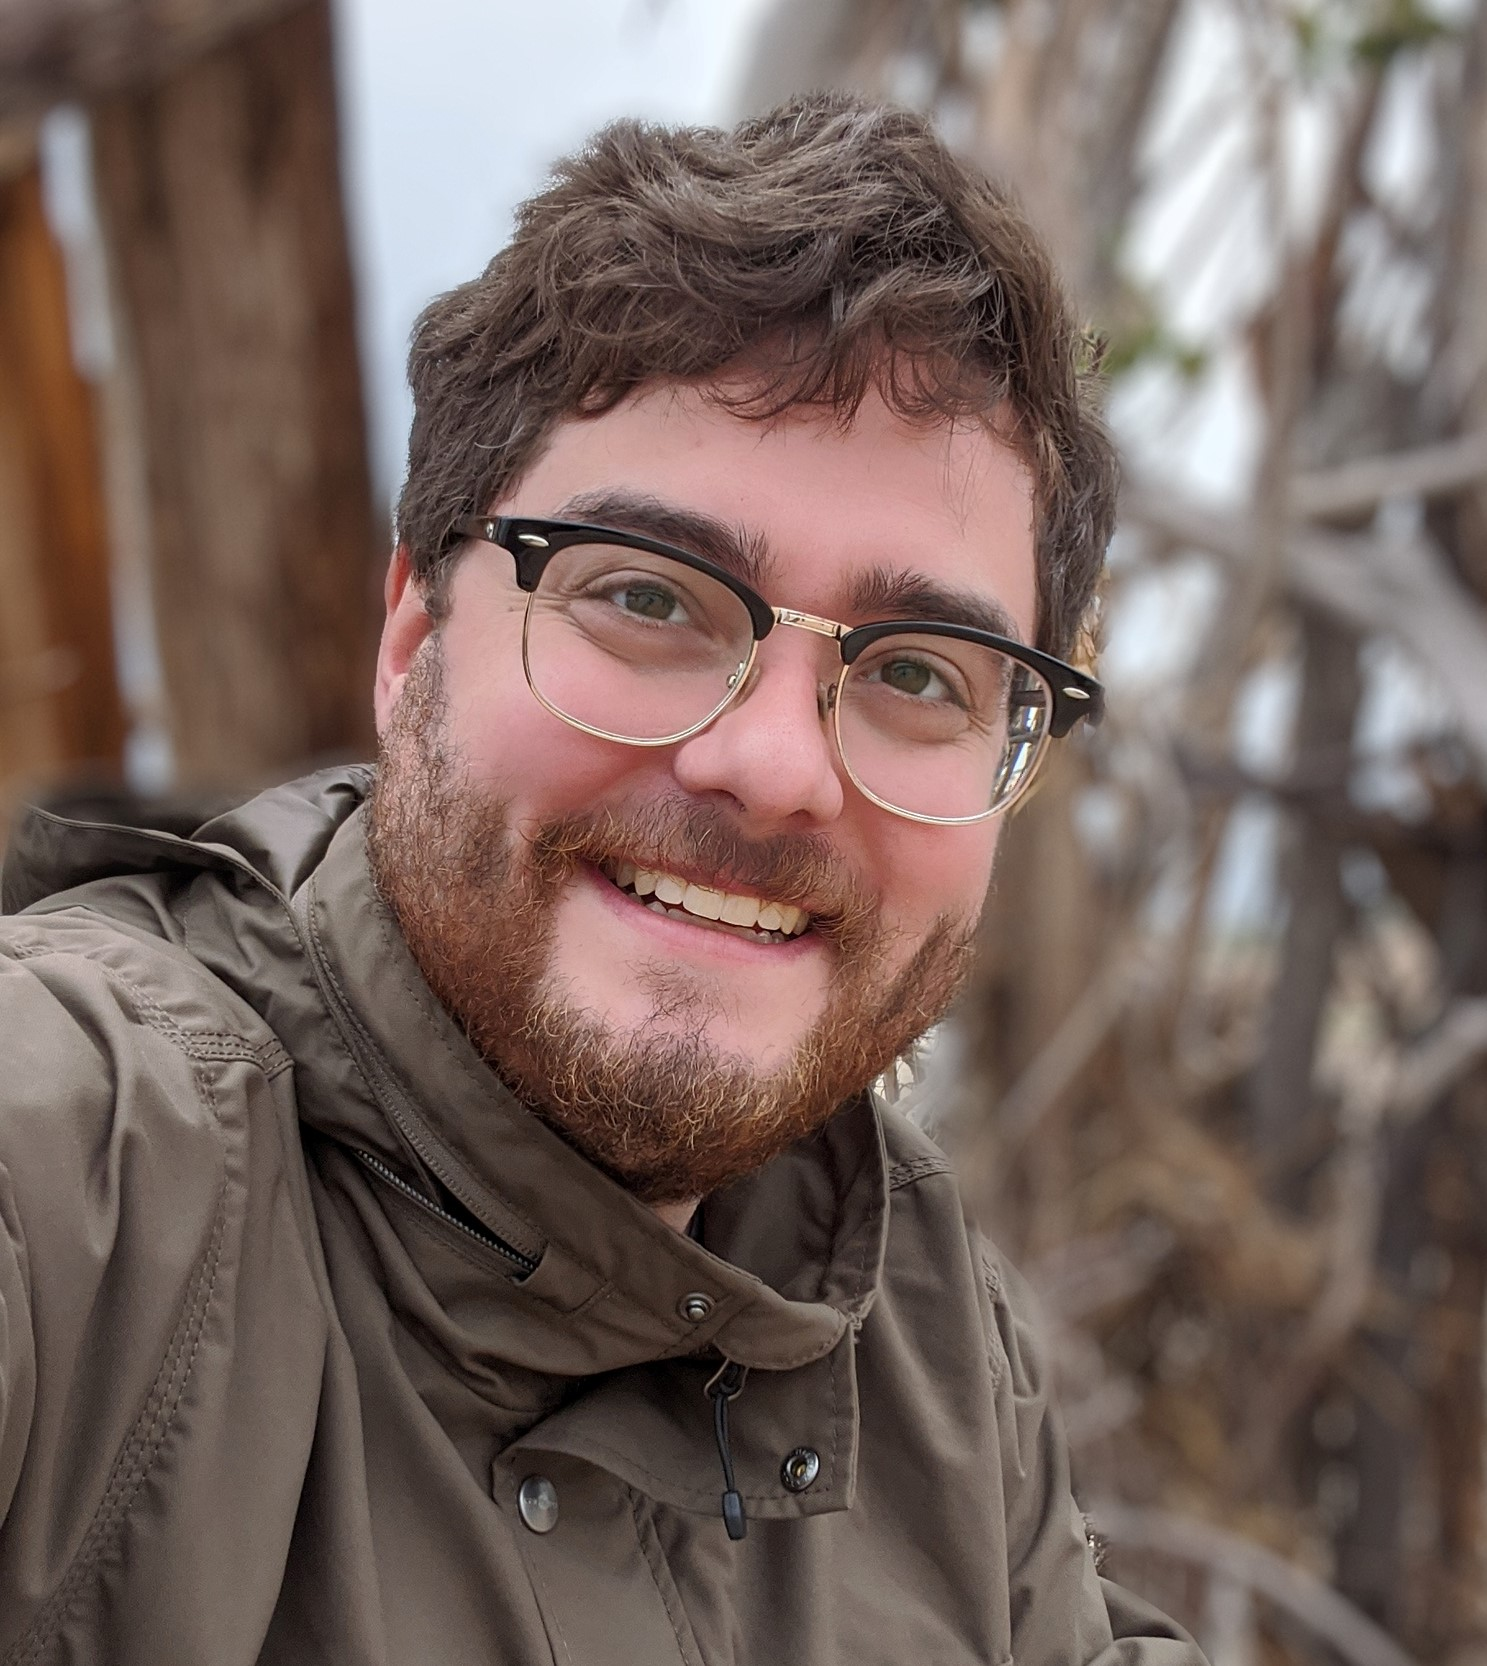 Dave is pictured wearing a brown coat in front of a backdrop of trees. He is a caucasian man with short wavy brown hair and full facial hair. He is wearing glasses and a broad smile.